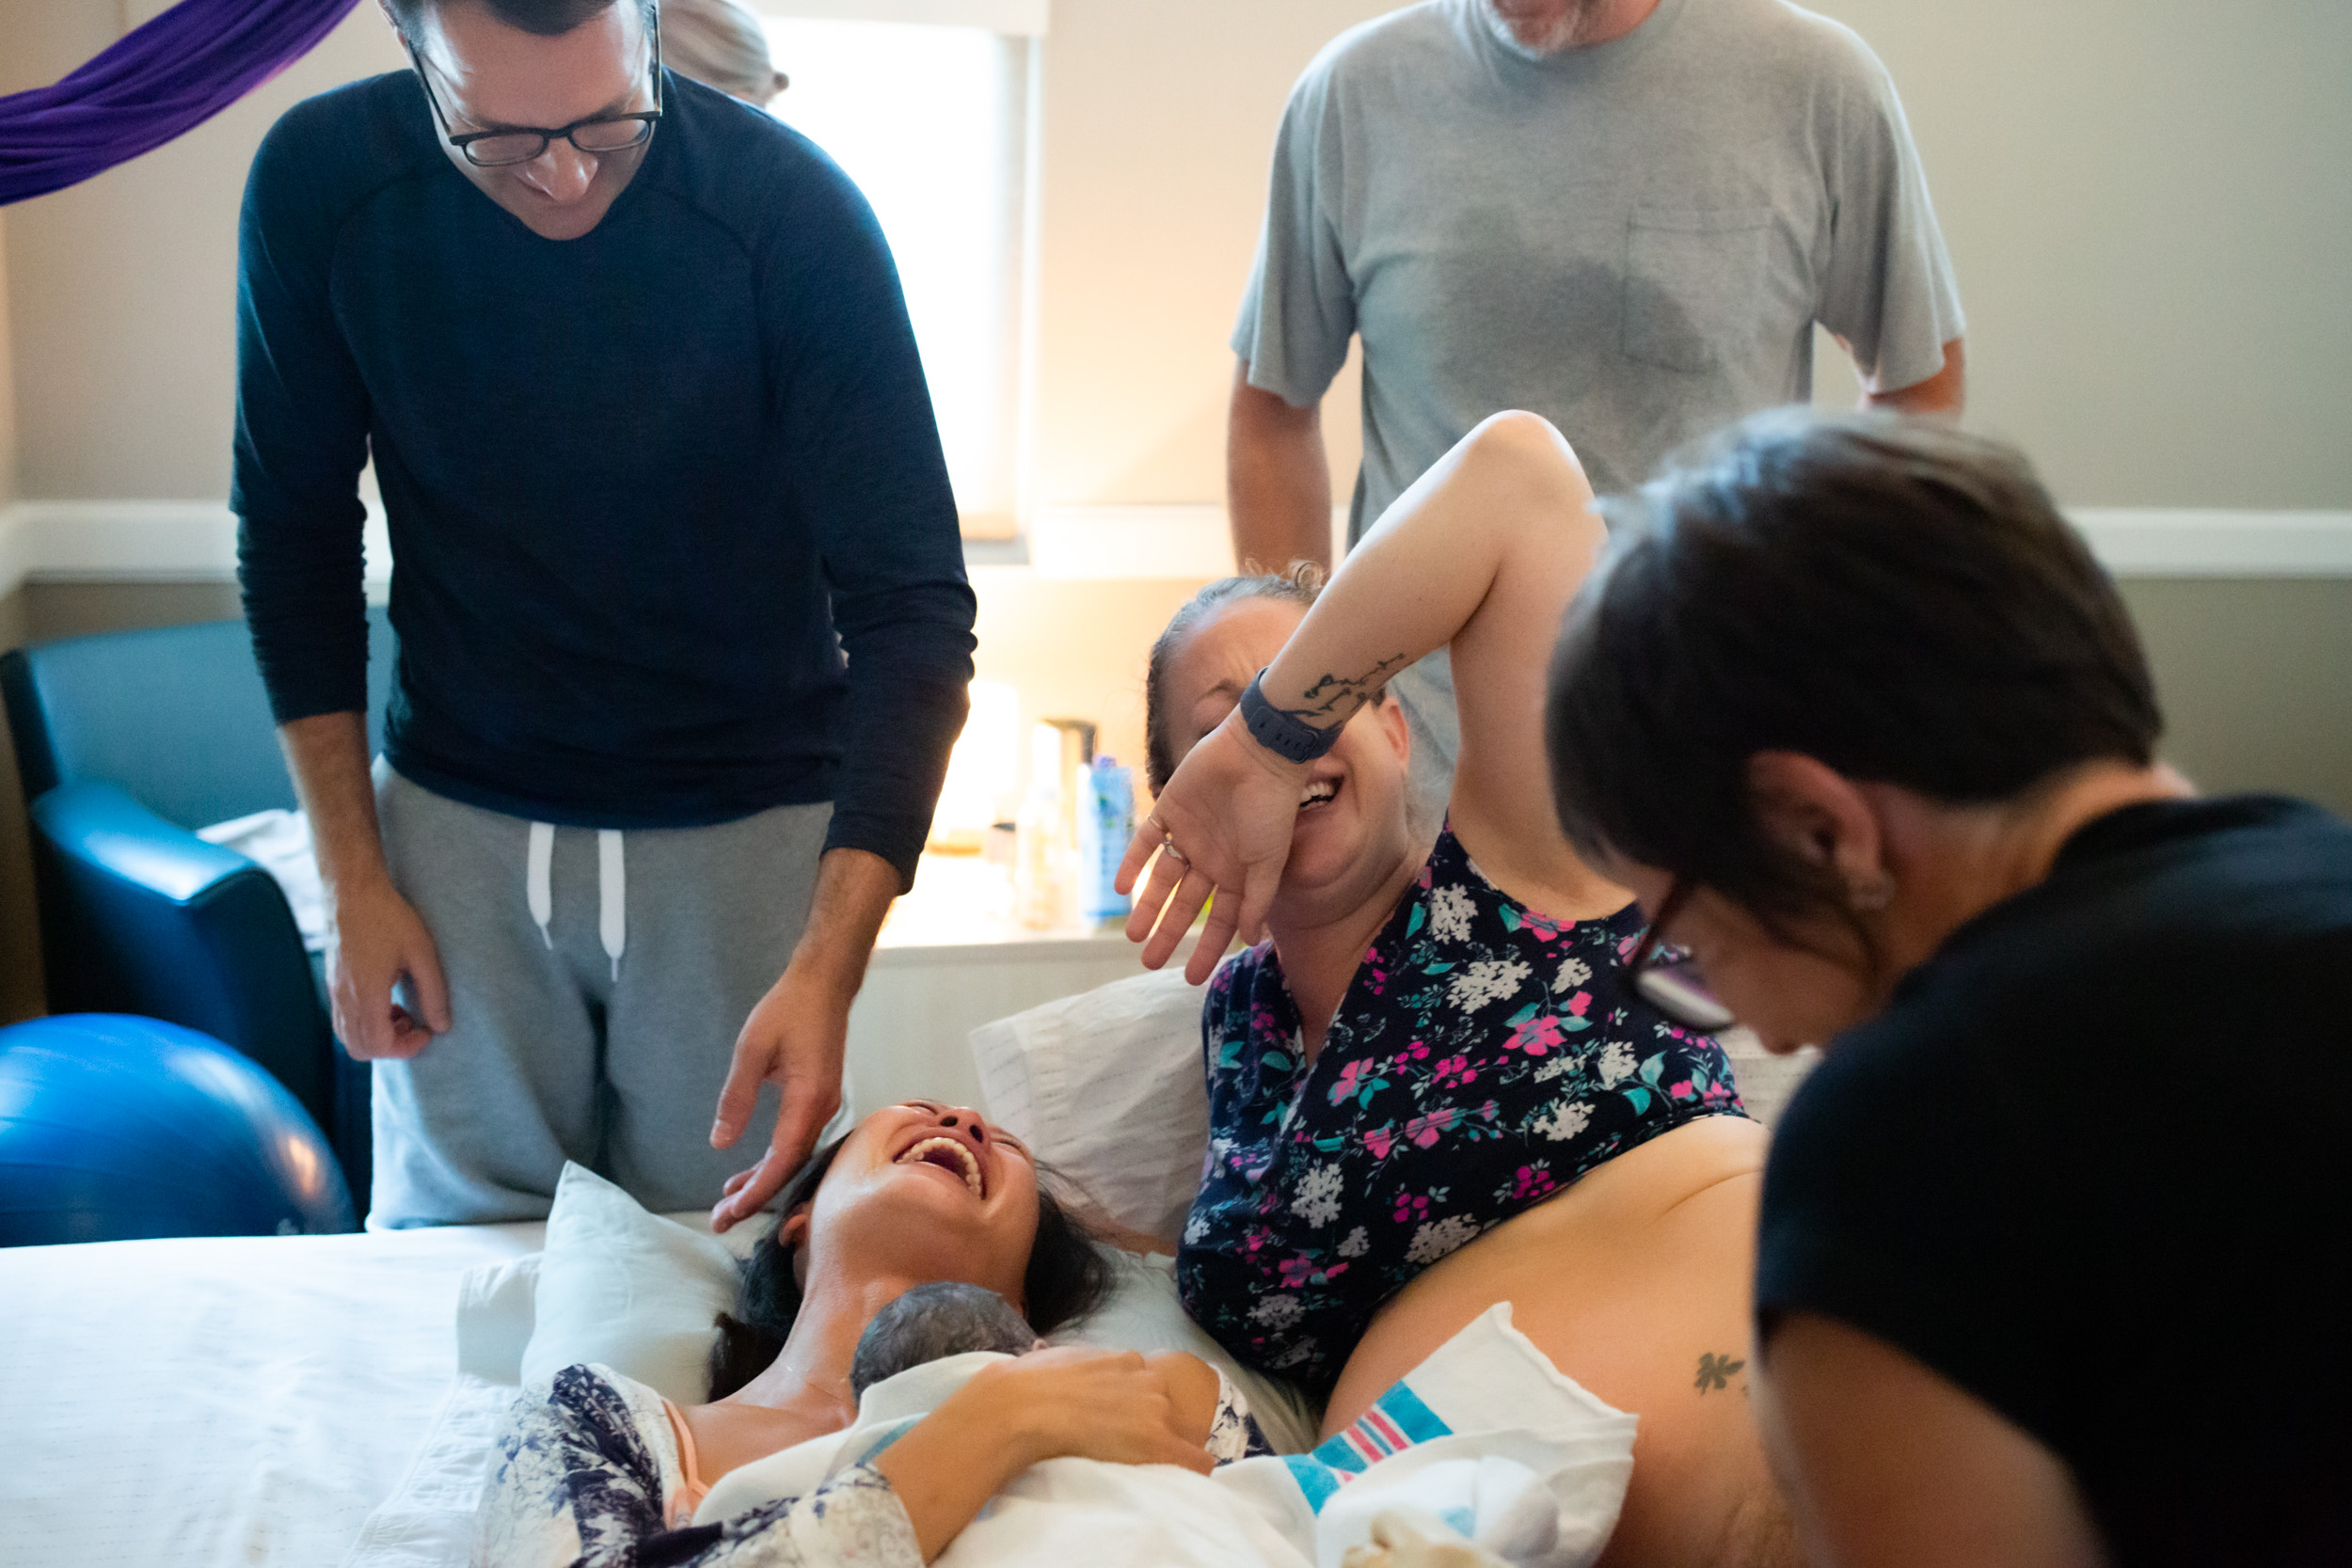 surrogate mom laughing with new parents after birth